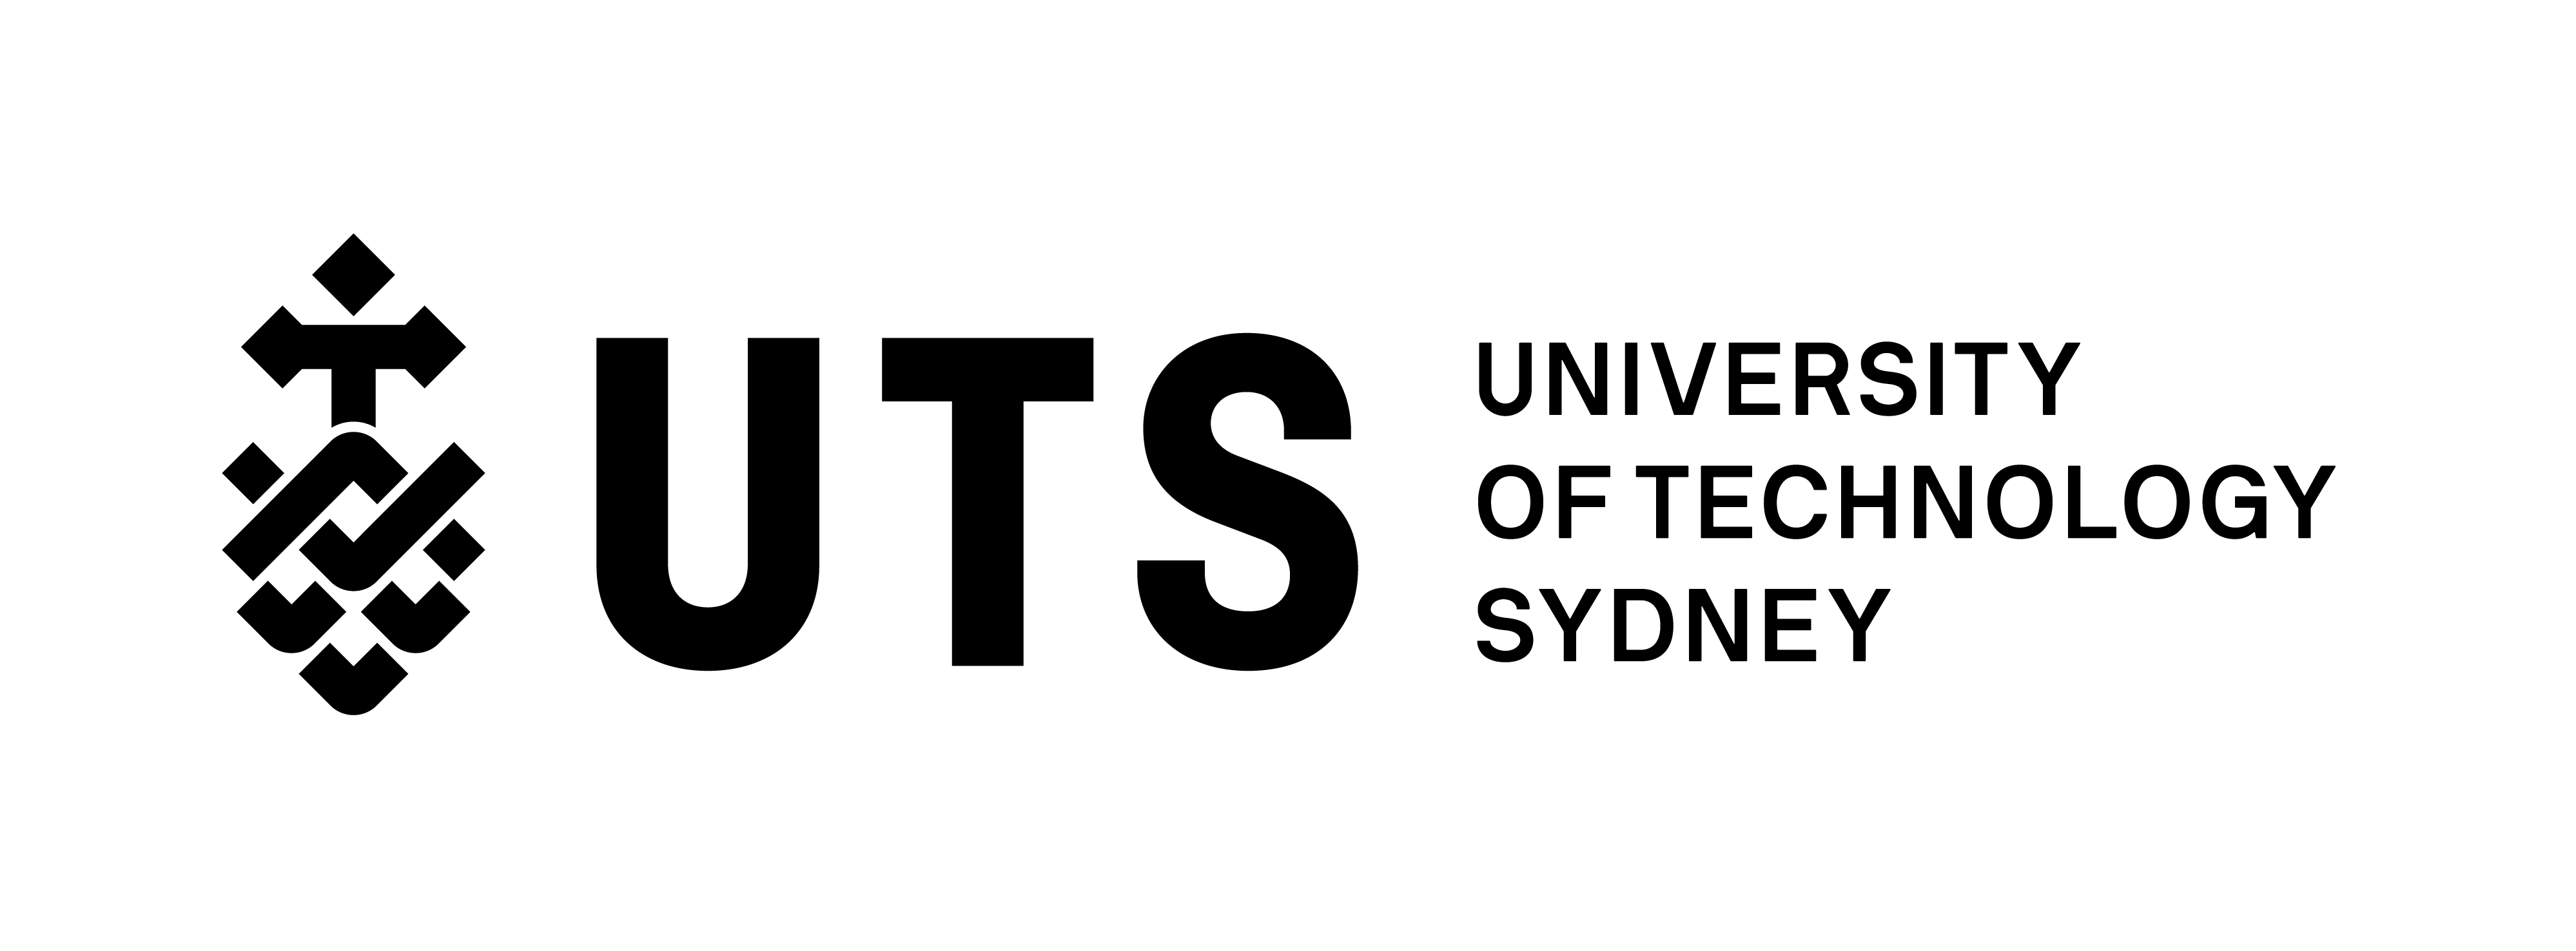 University of Technology Sydney - Graduate Certificate in Sport Management